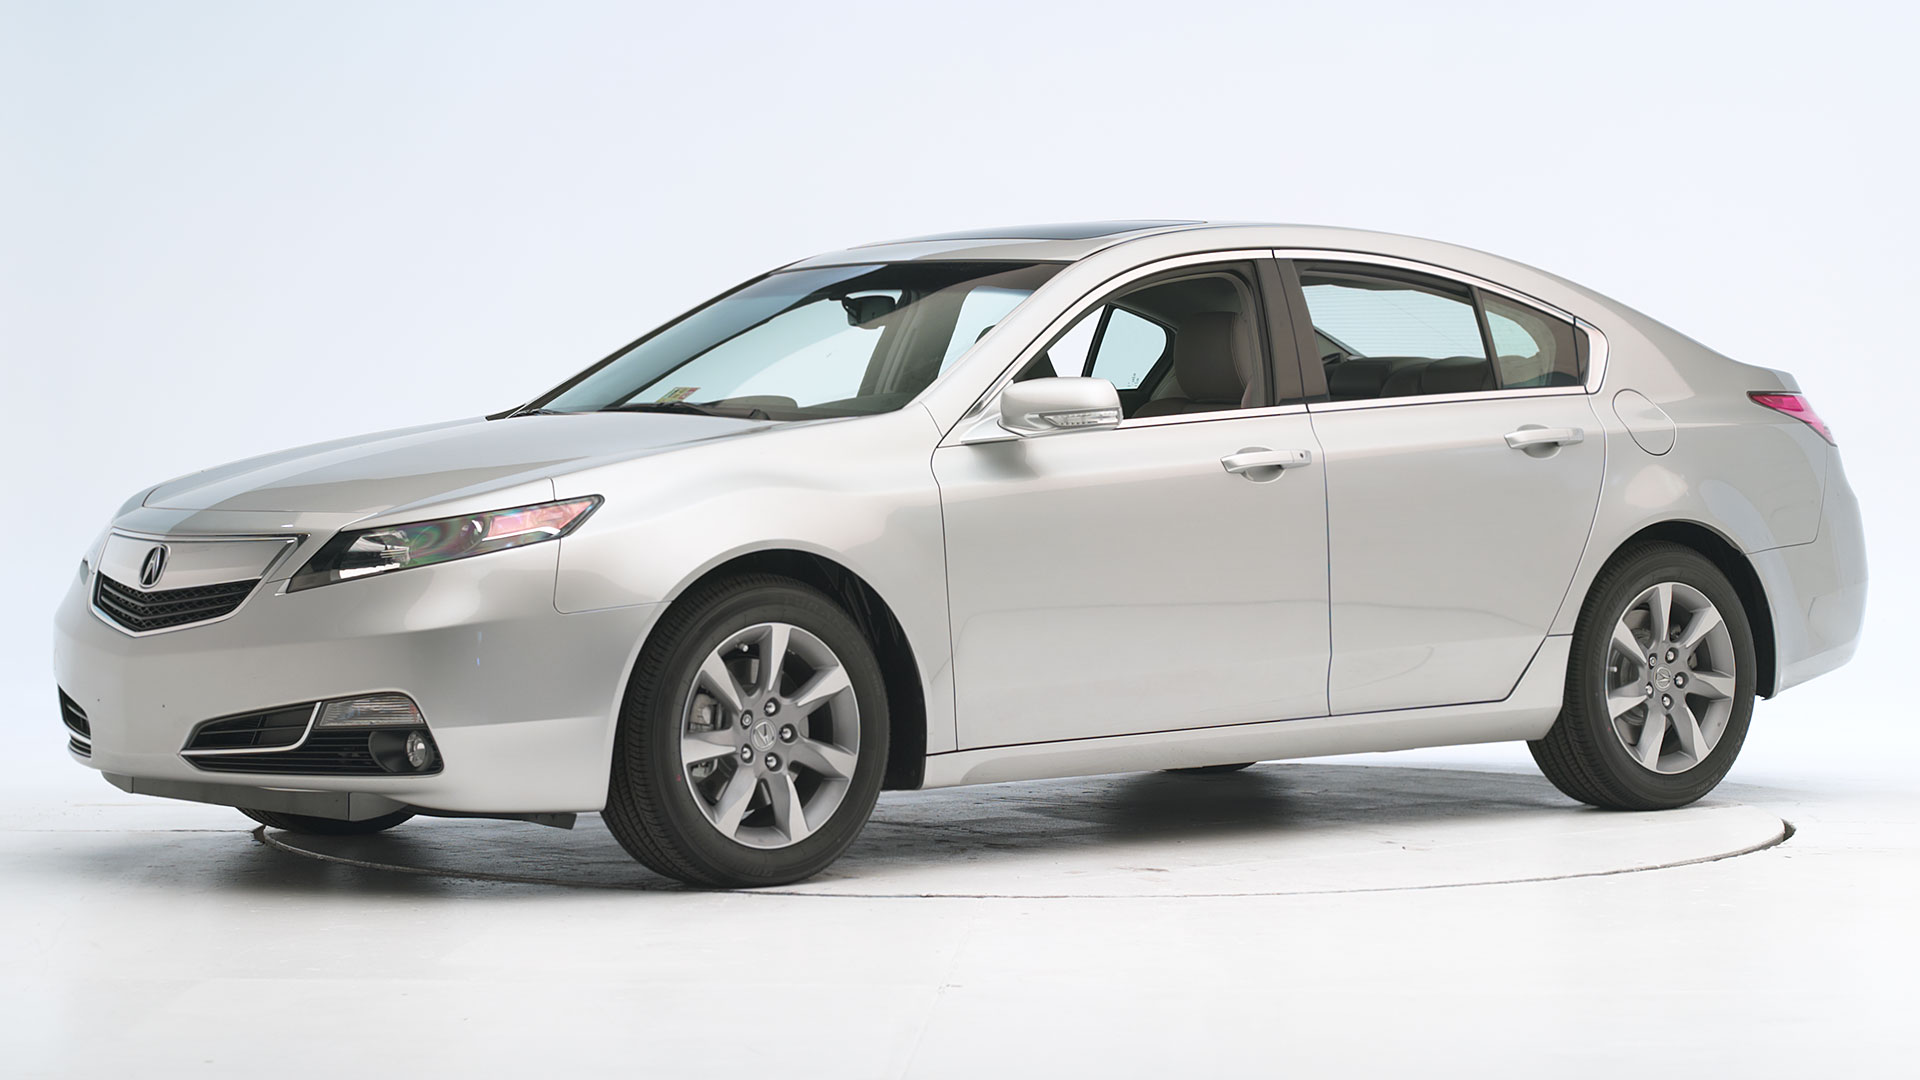 2014 Acura TL 4-door sedan